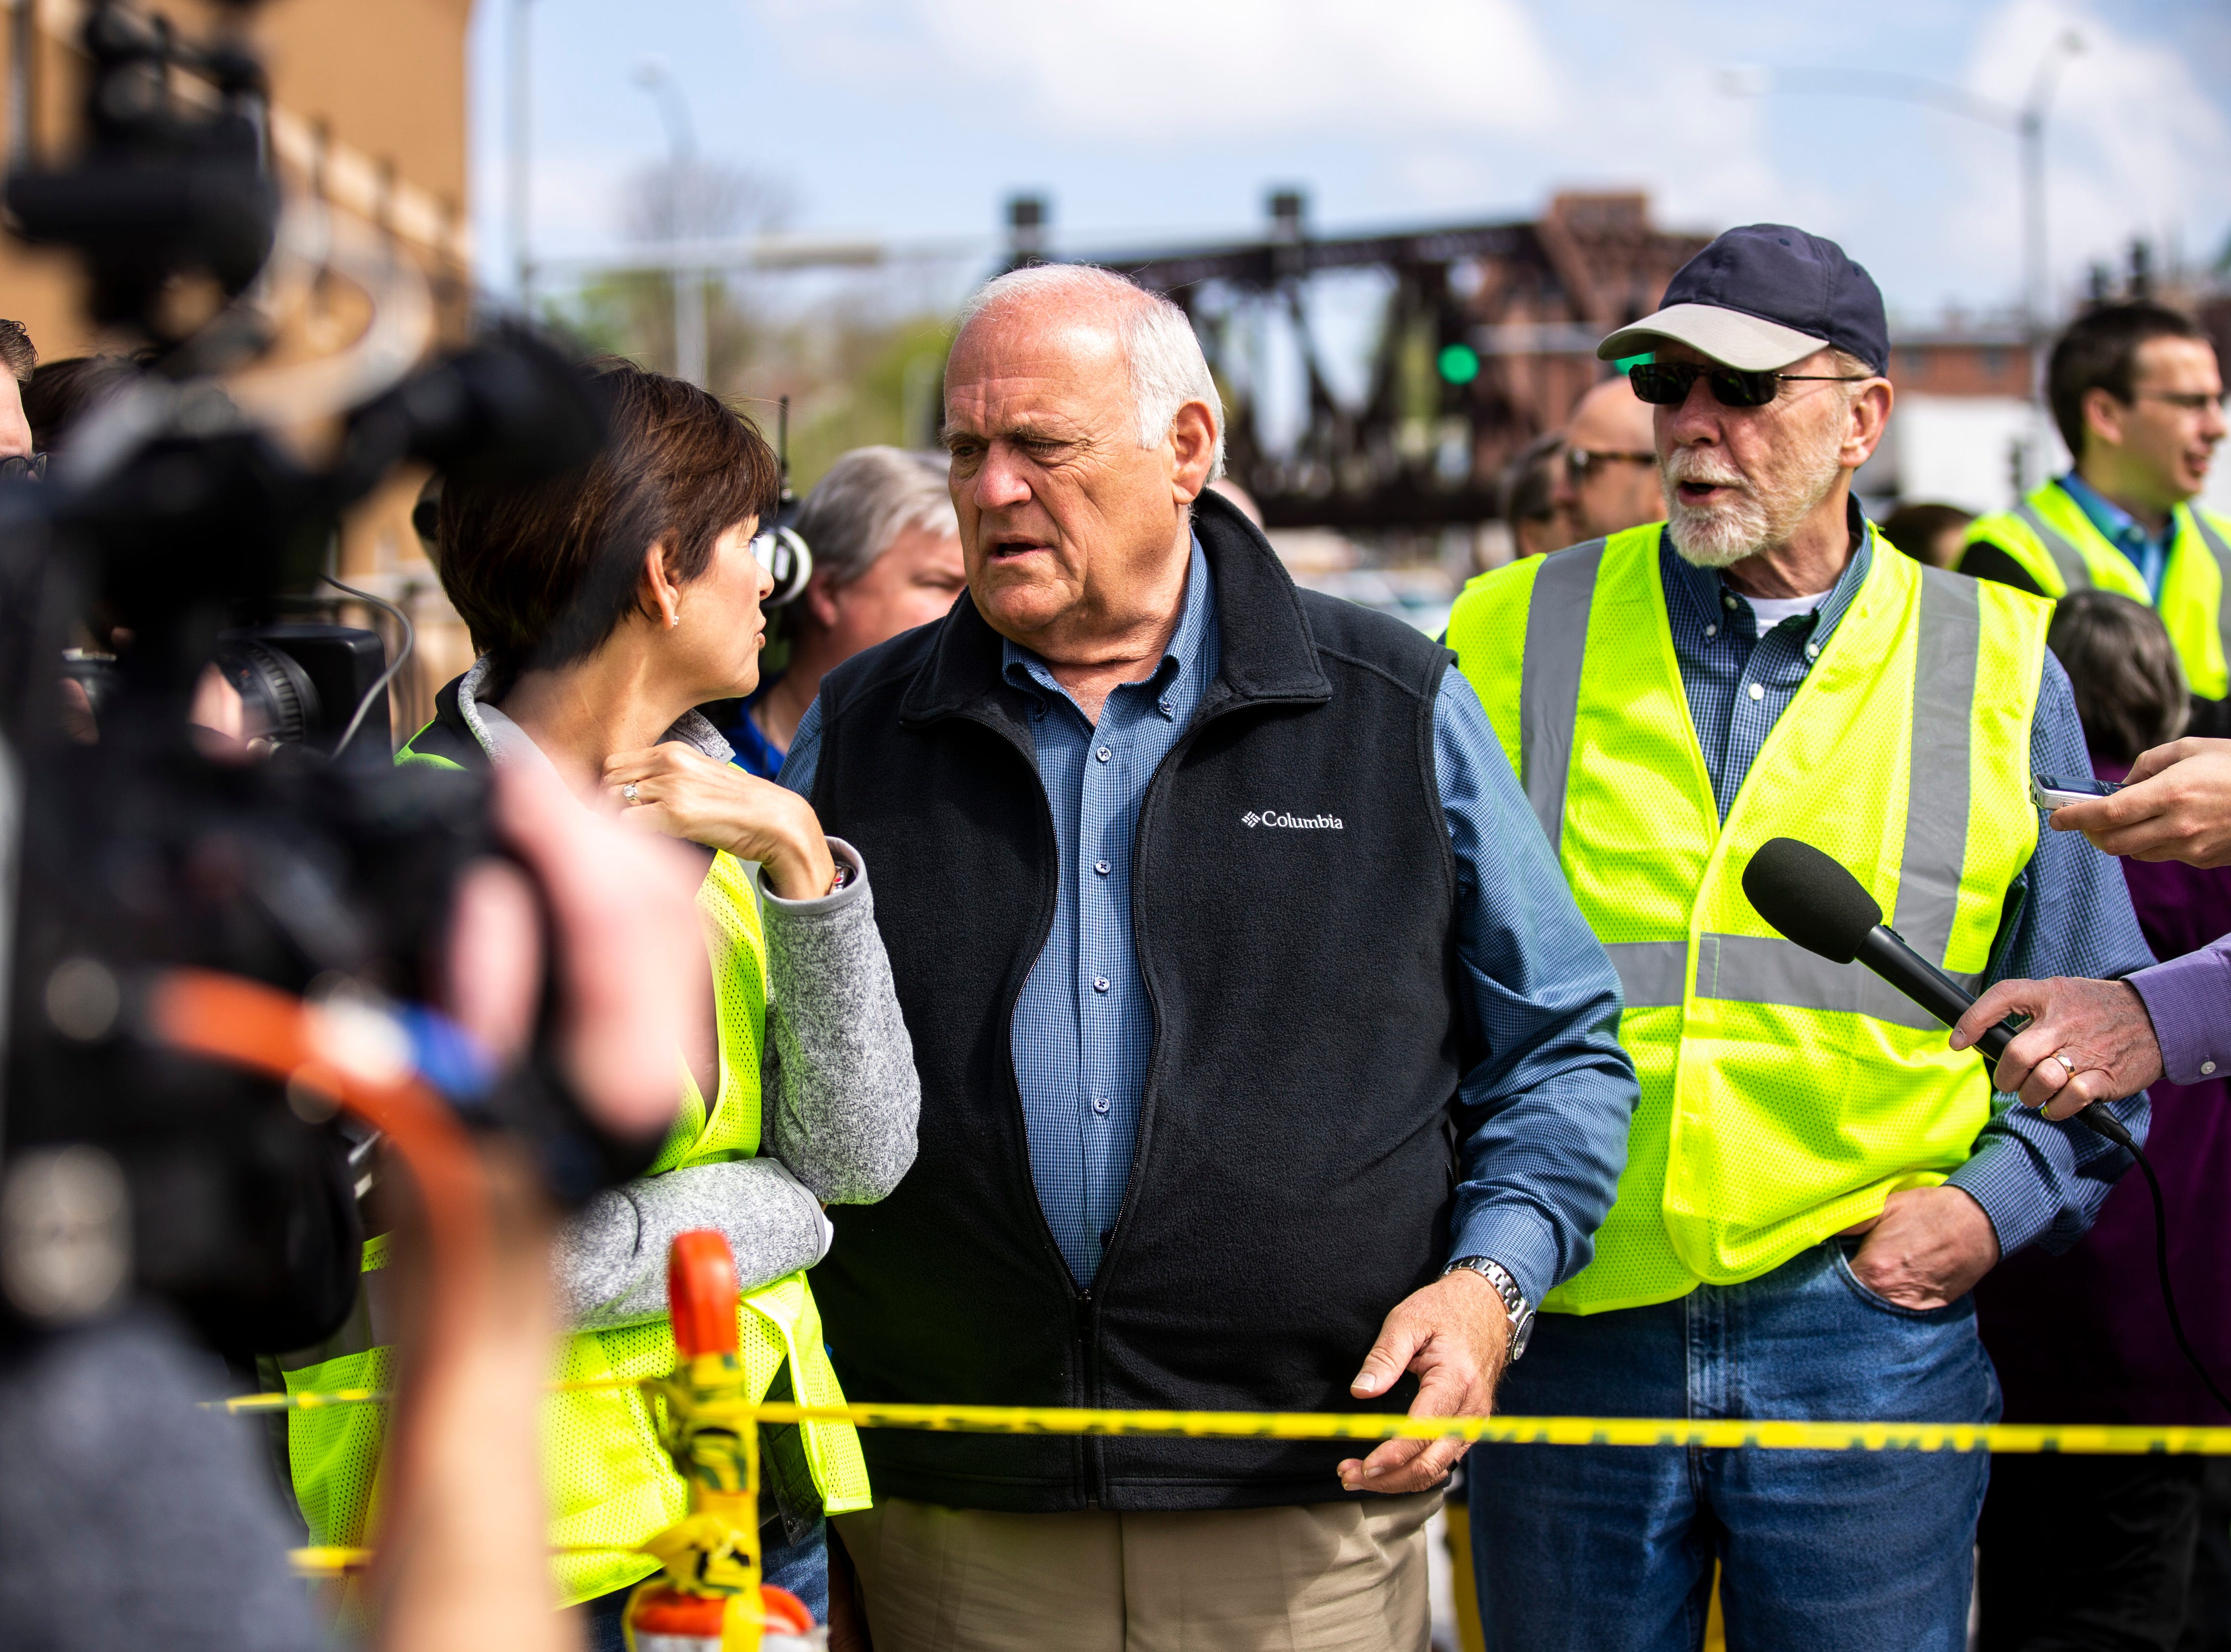 Davenport Mayor Frank Klipsch, center, talks with Iowa Gov. Kim Reynolds, while touring areas impacted by floodwater, with U.S. Rep. Dave Loebsack, D-Iowa, (right) Friday, May 3, 2019, in downtown Davenport, Iowa. The temporary flood barrier at Pershing Avenue and River Drive failed Tuesday afternoon.